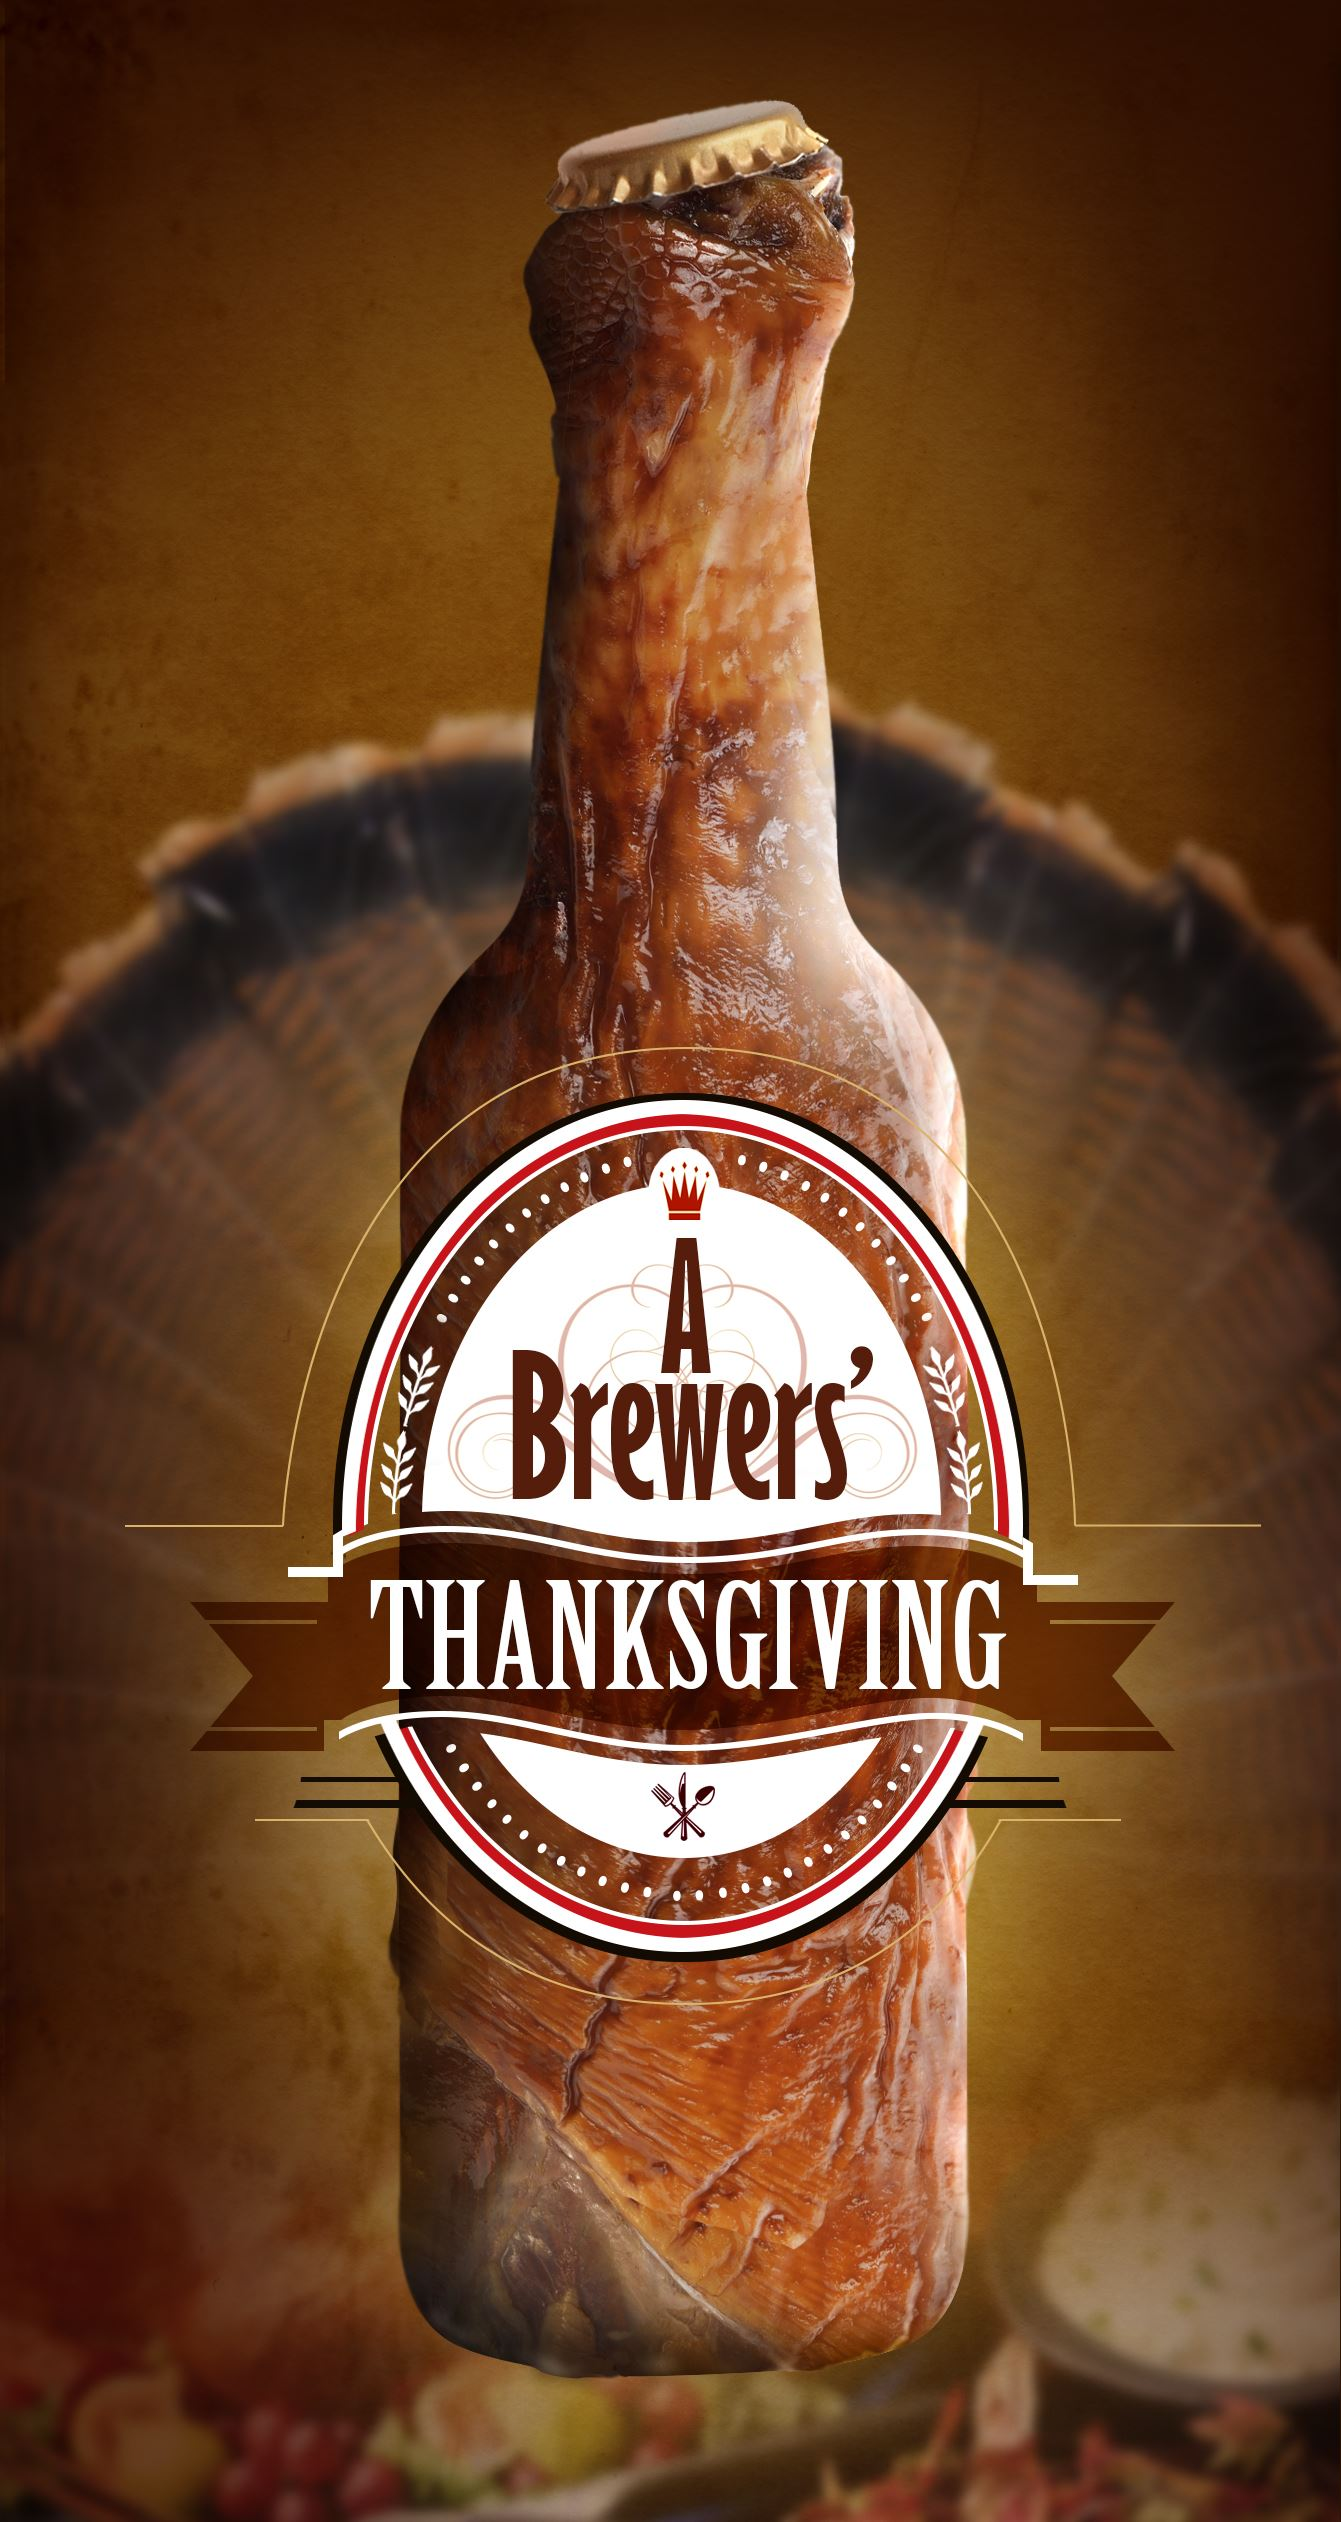 Brewers_Turkey112014_dm